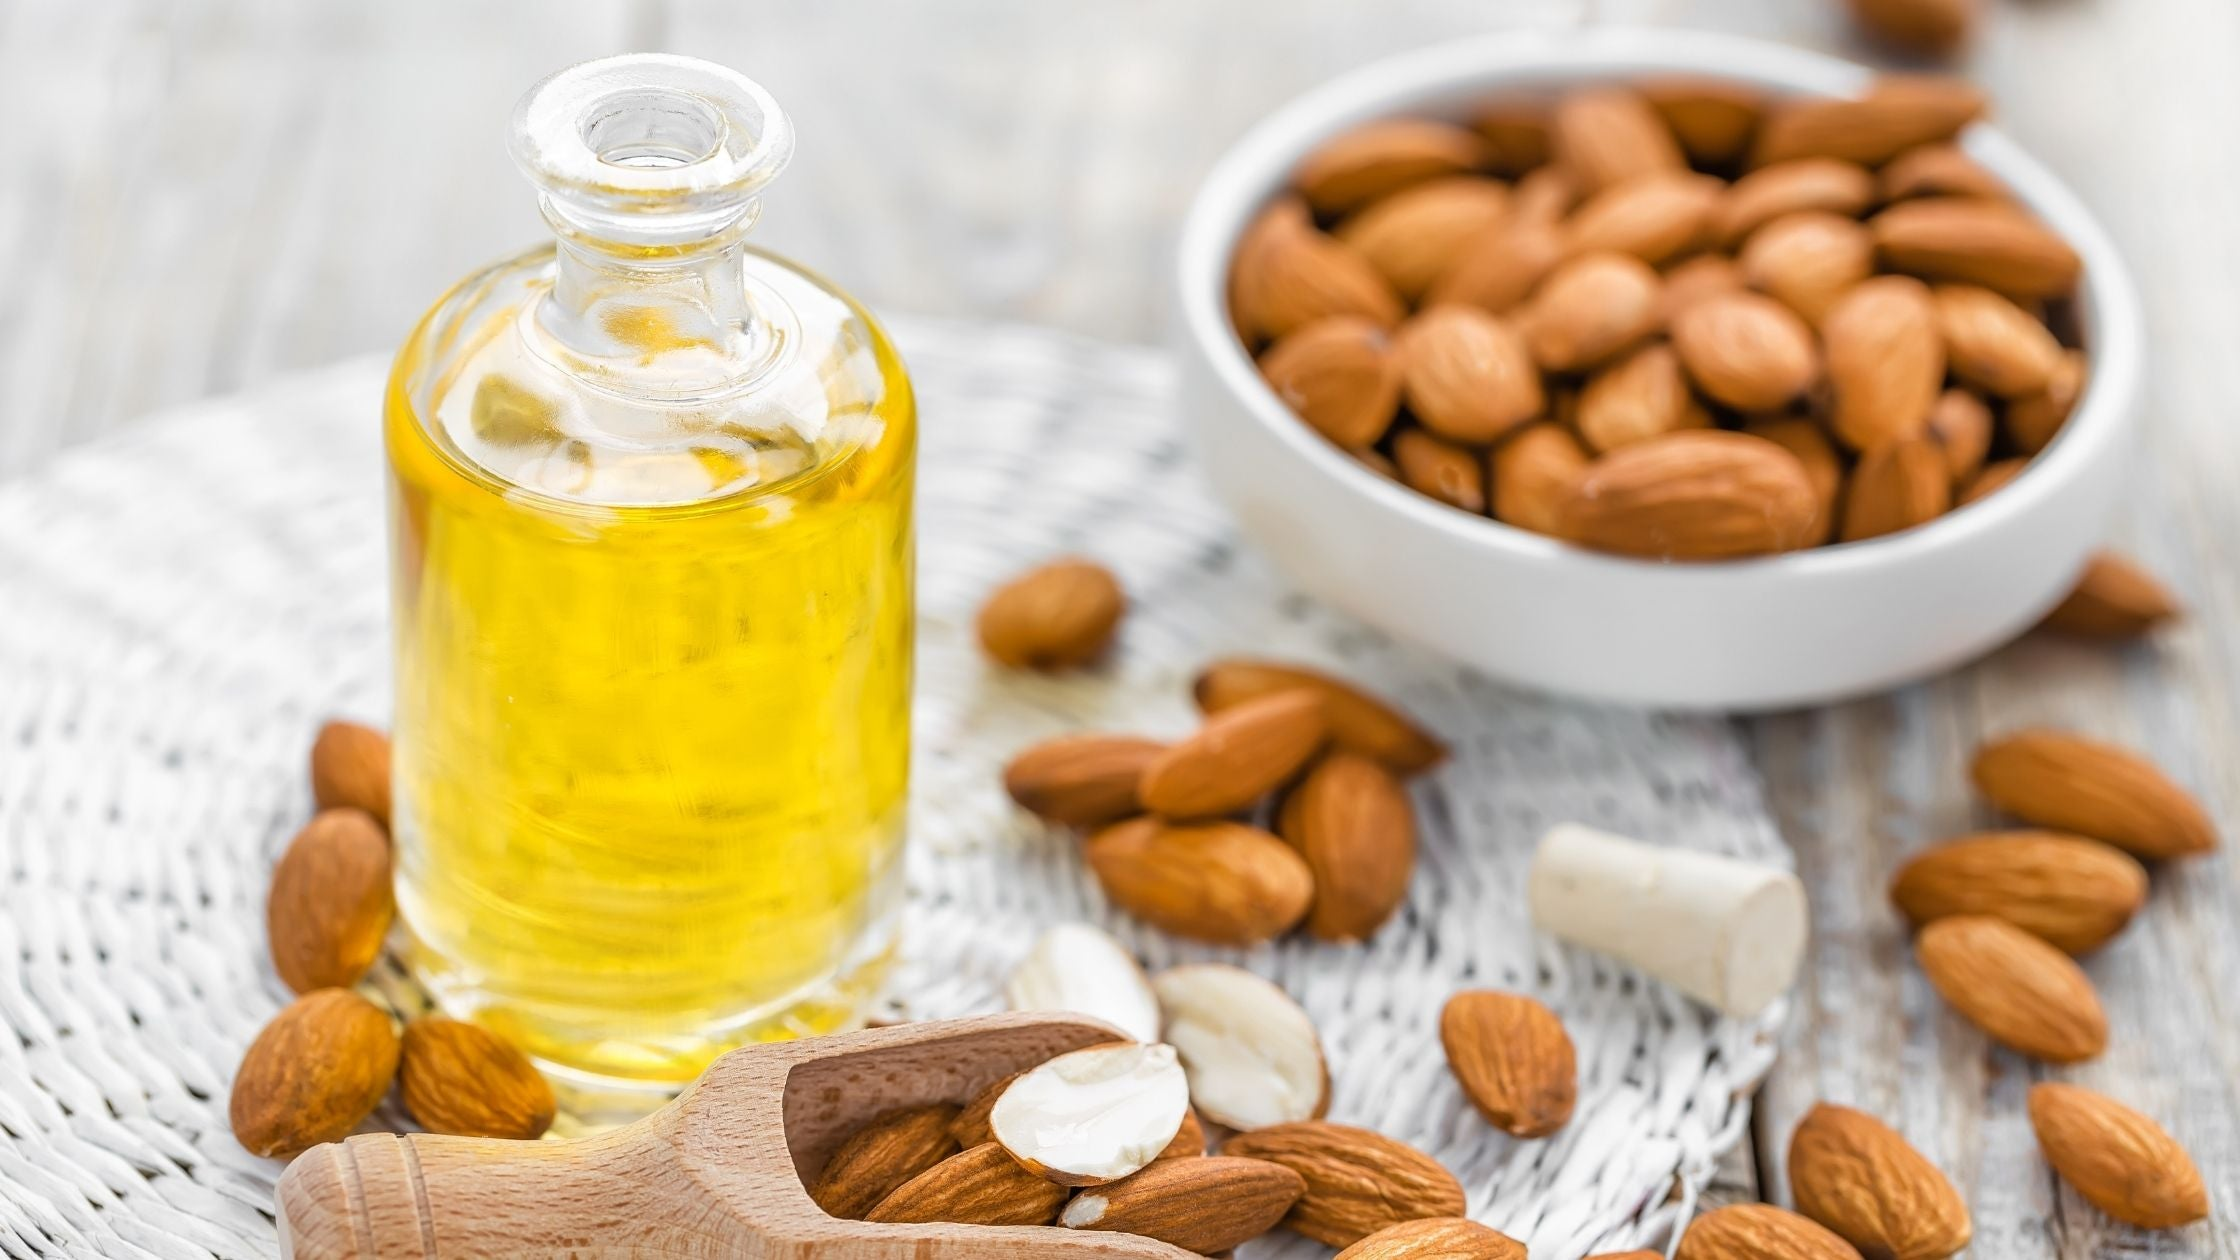 Almond oil benefits for your skin